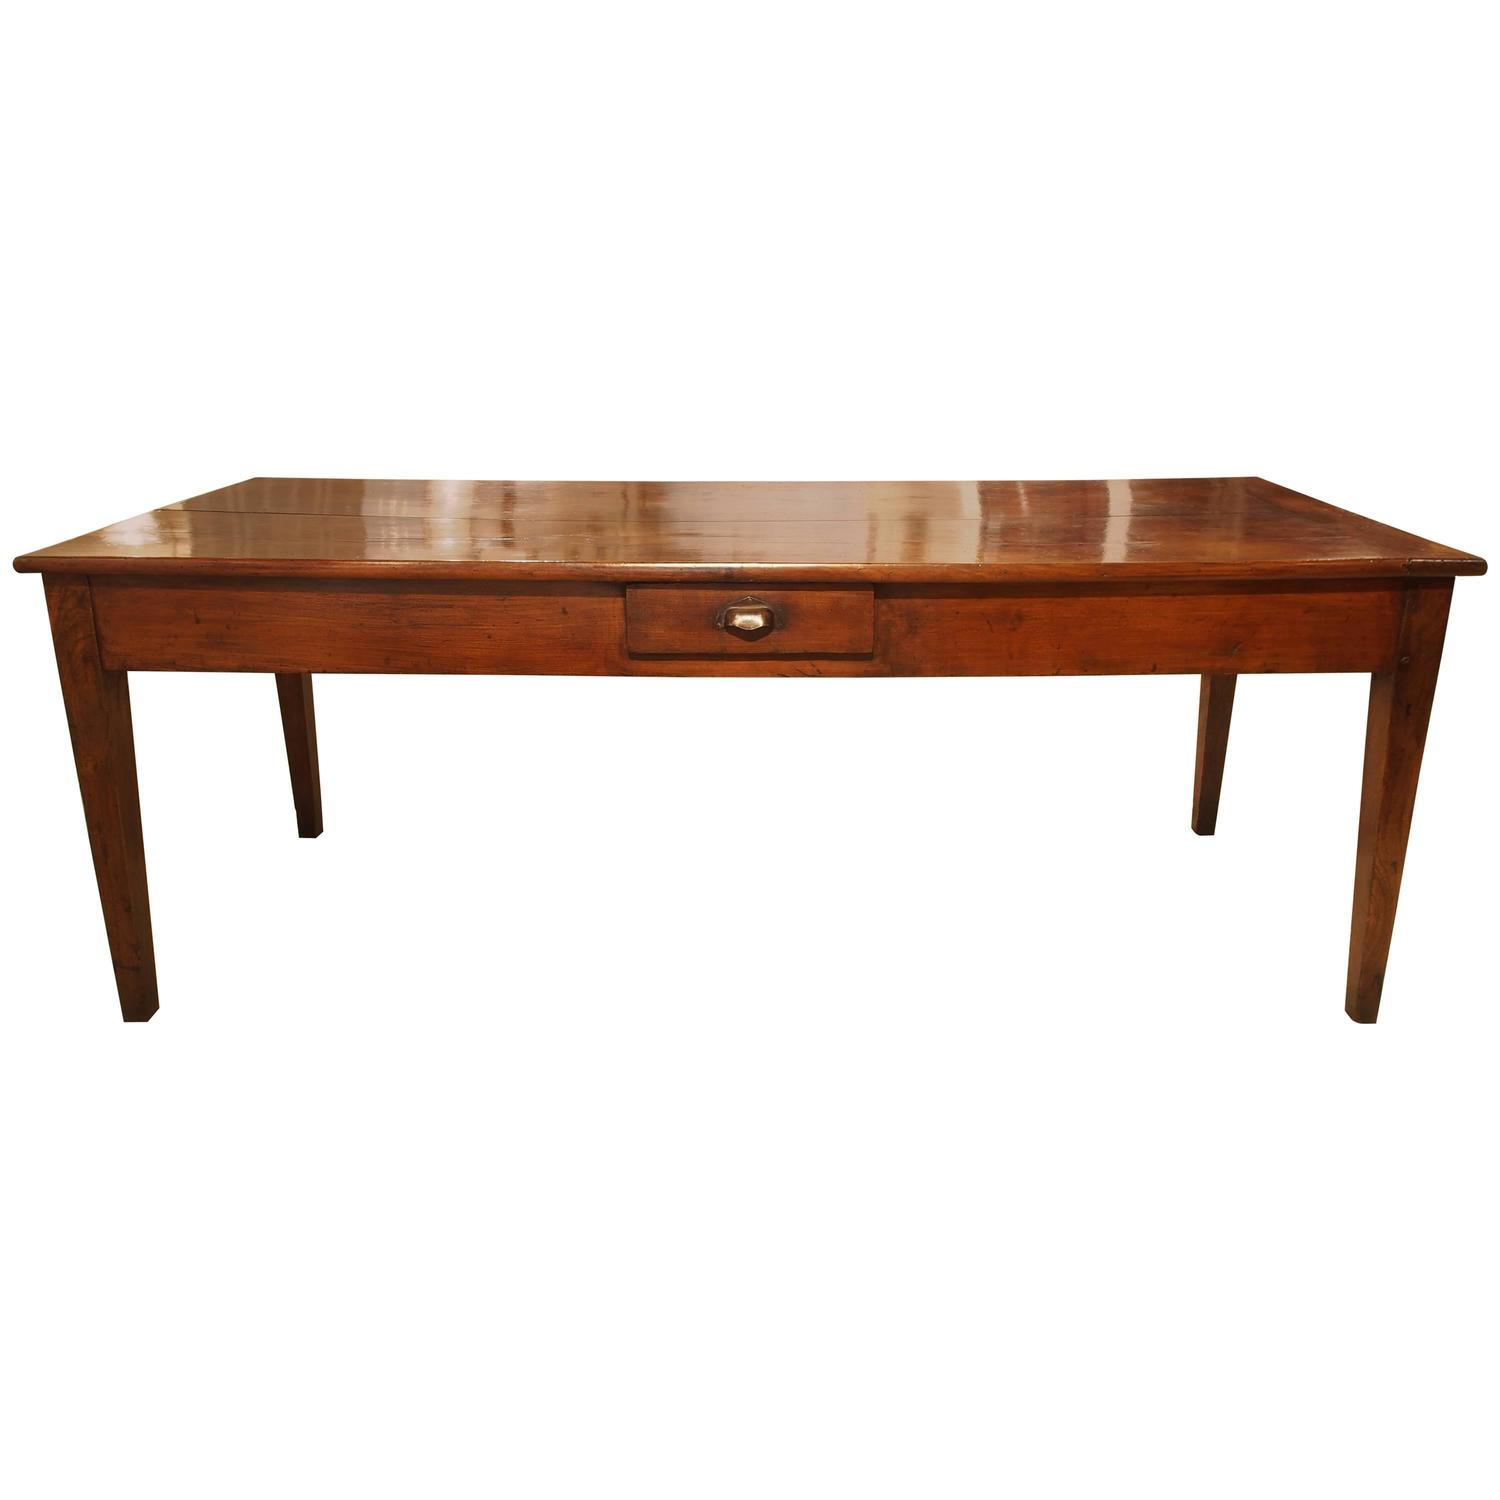 Farm Table in Cherry with Drawer For Sale at 1stdibs